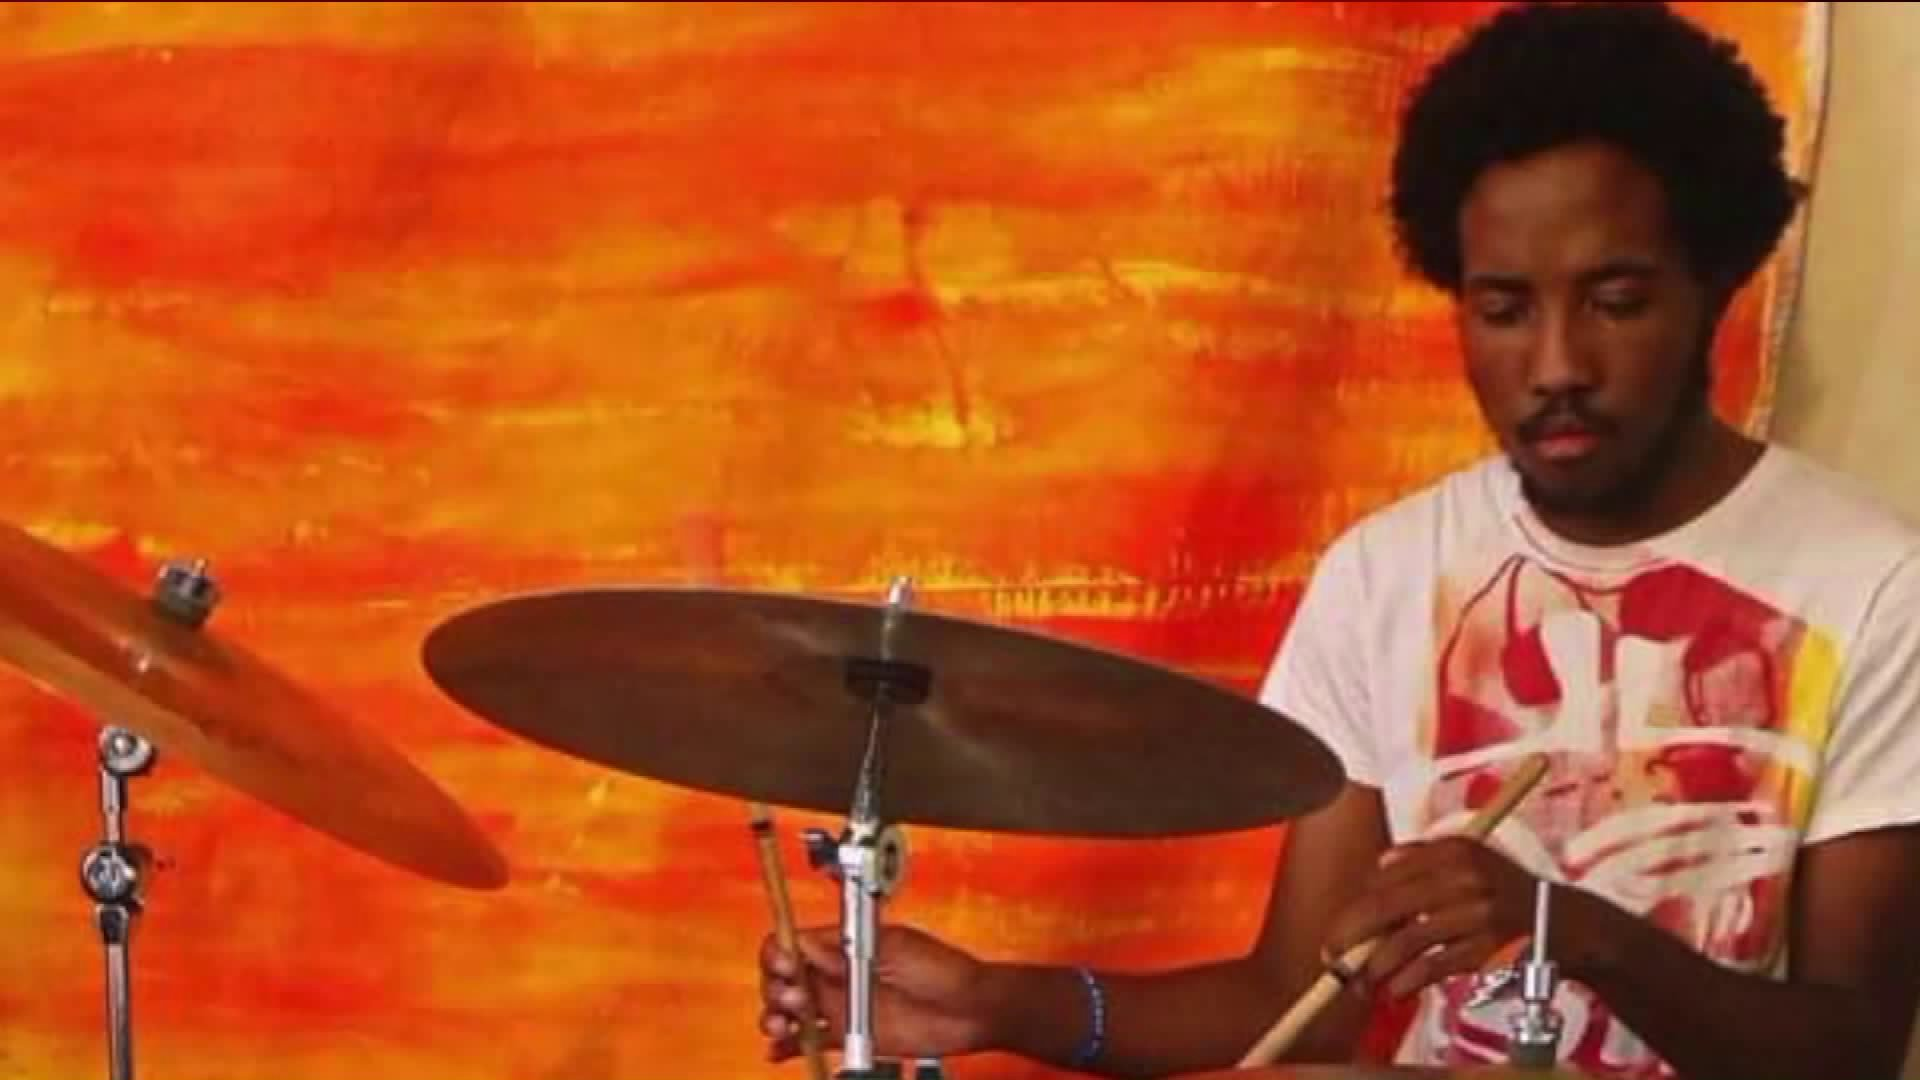 USC student Victor McElhaney is pictured playing drums. McElhaney died after he was shot near the USC campus.